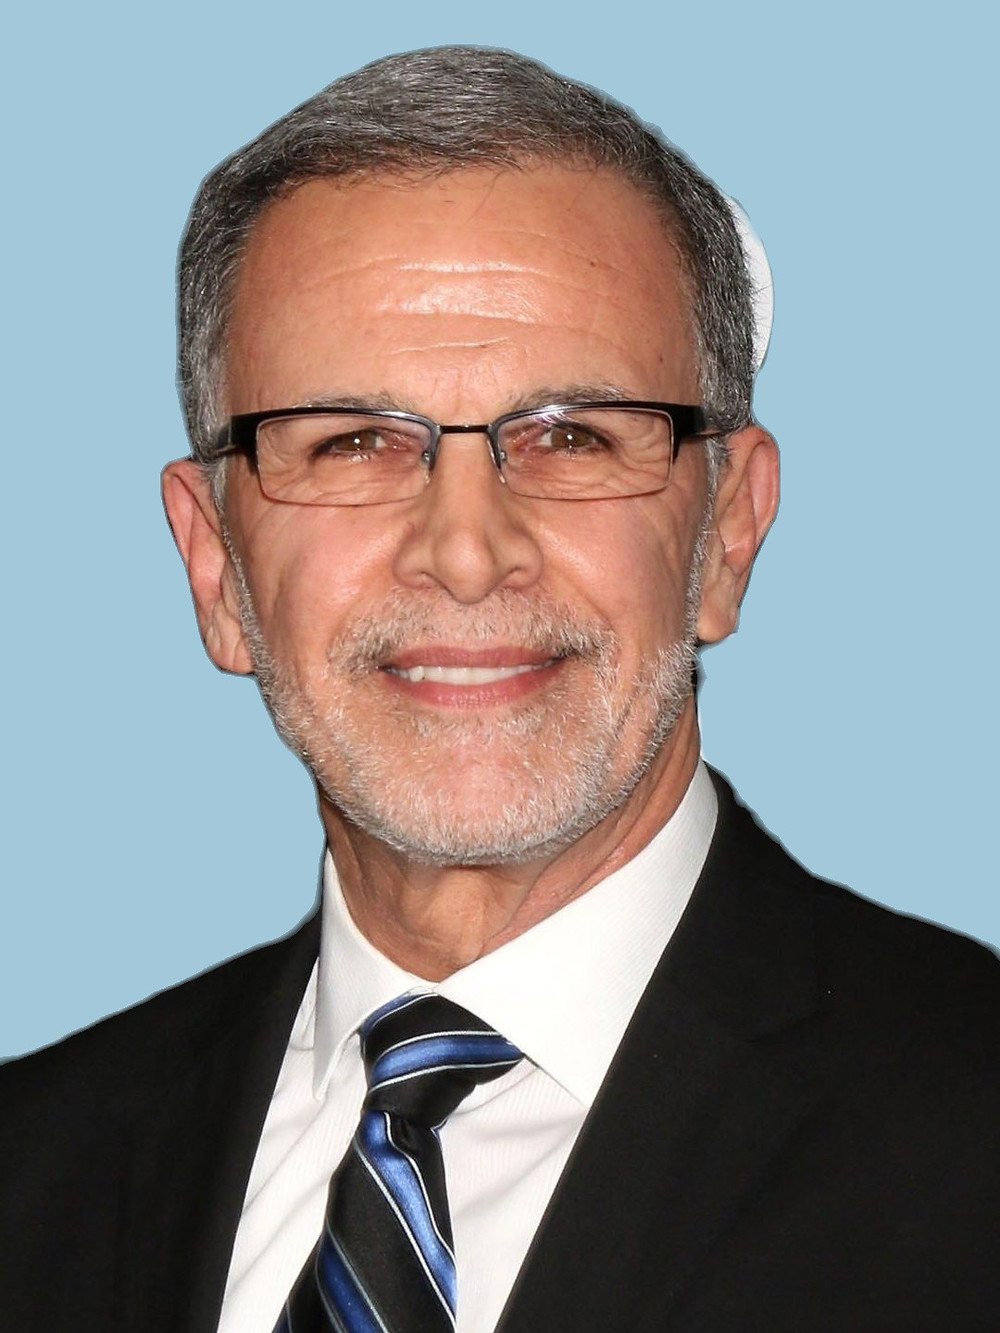 Facts About Cuban Exiles regarding Tony Plana was born José Antonio Plana in Havana. His family fled to Culver City, California. He has played leading and supporting roles in over seventy films